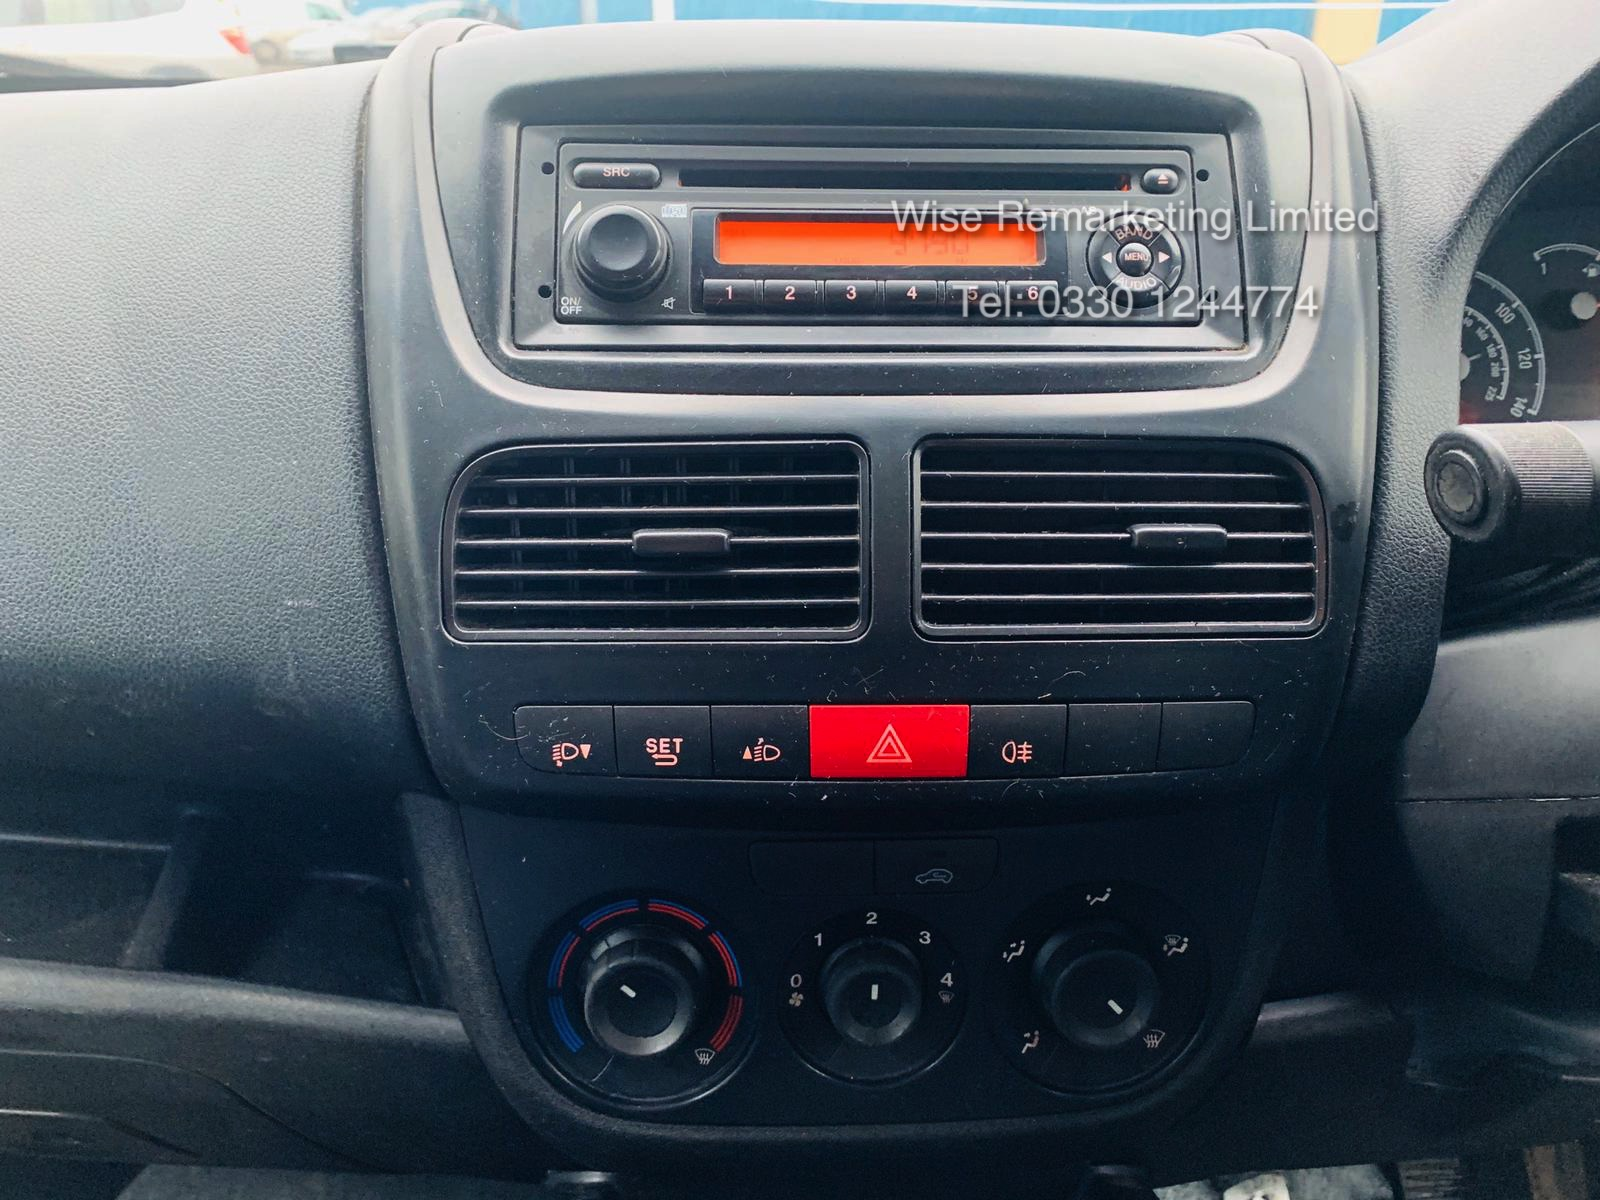 Vauxhall Combo 2300 1.6 CDTI Long - 2016 Model - 1 Keeper From New - Twin Doors - Ply Lined - Image 14 of 21